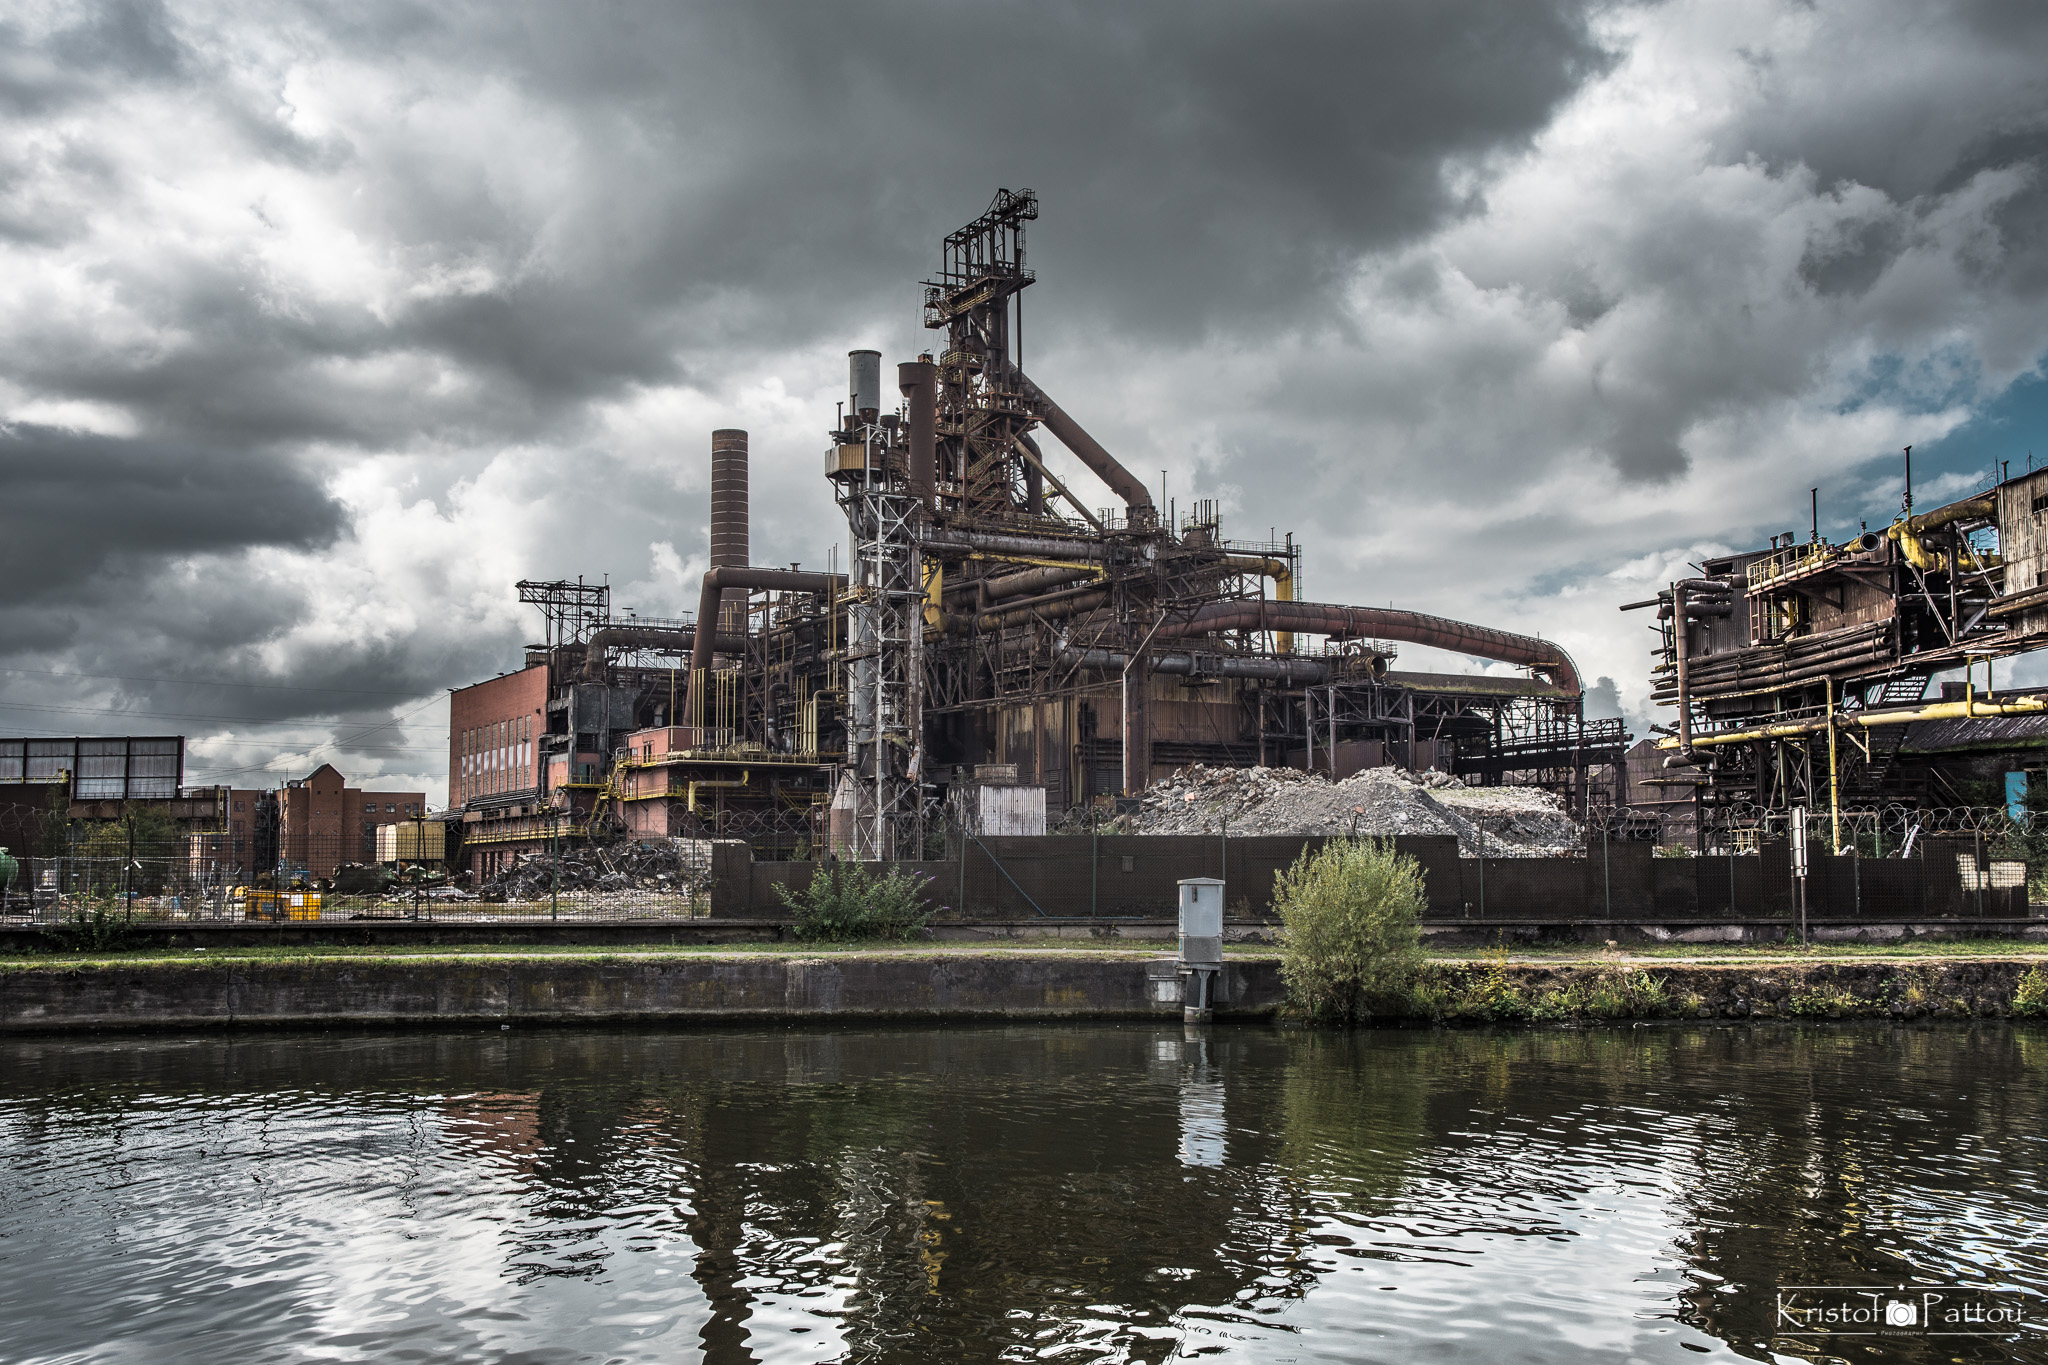 Abandoned factorty and steel industrie